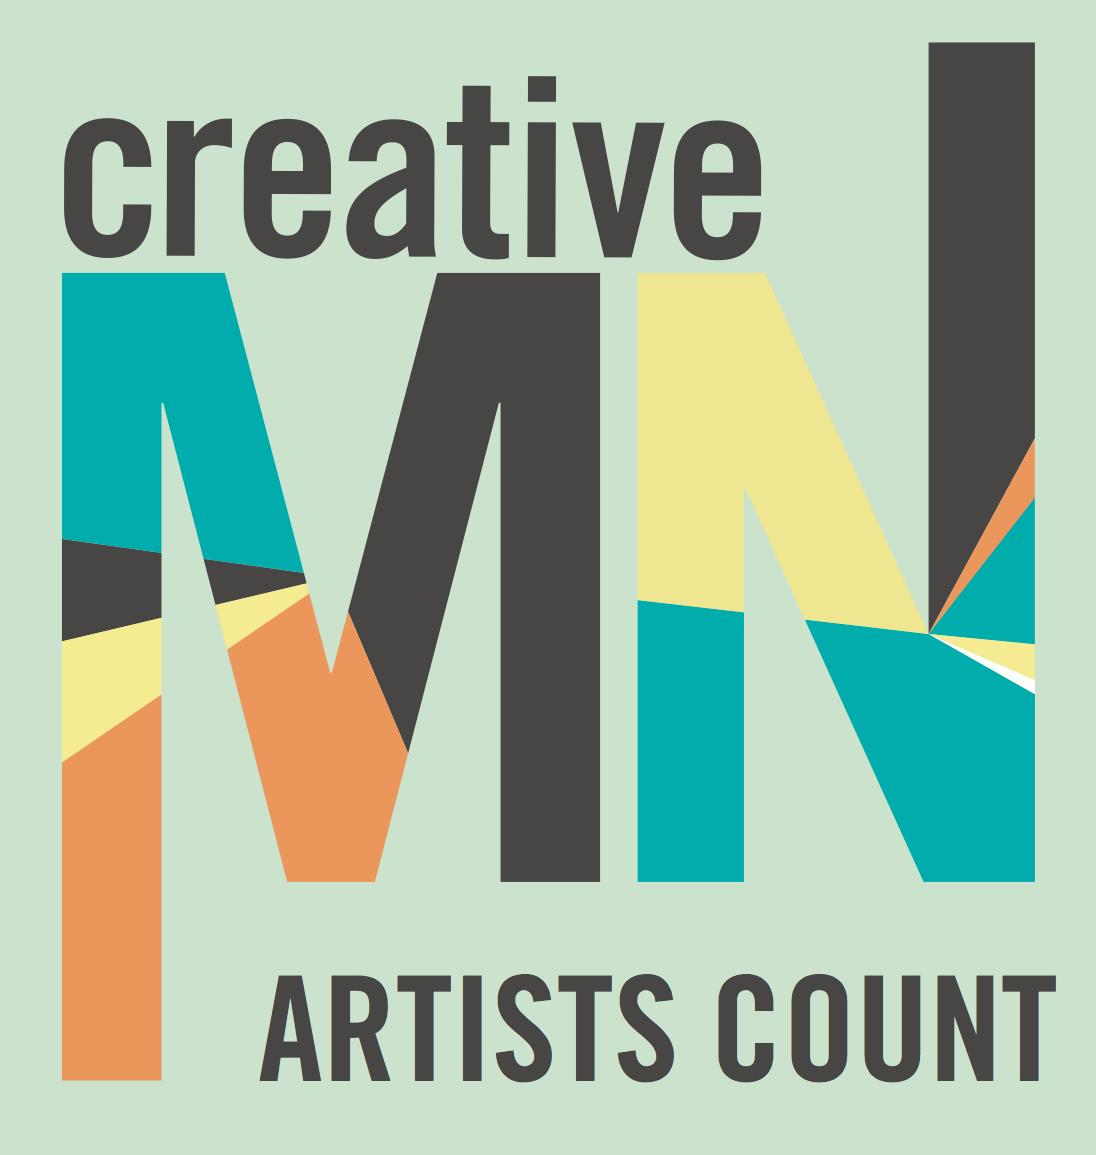 Says Creative MN Arists Count